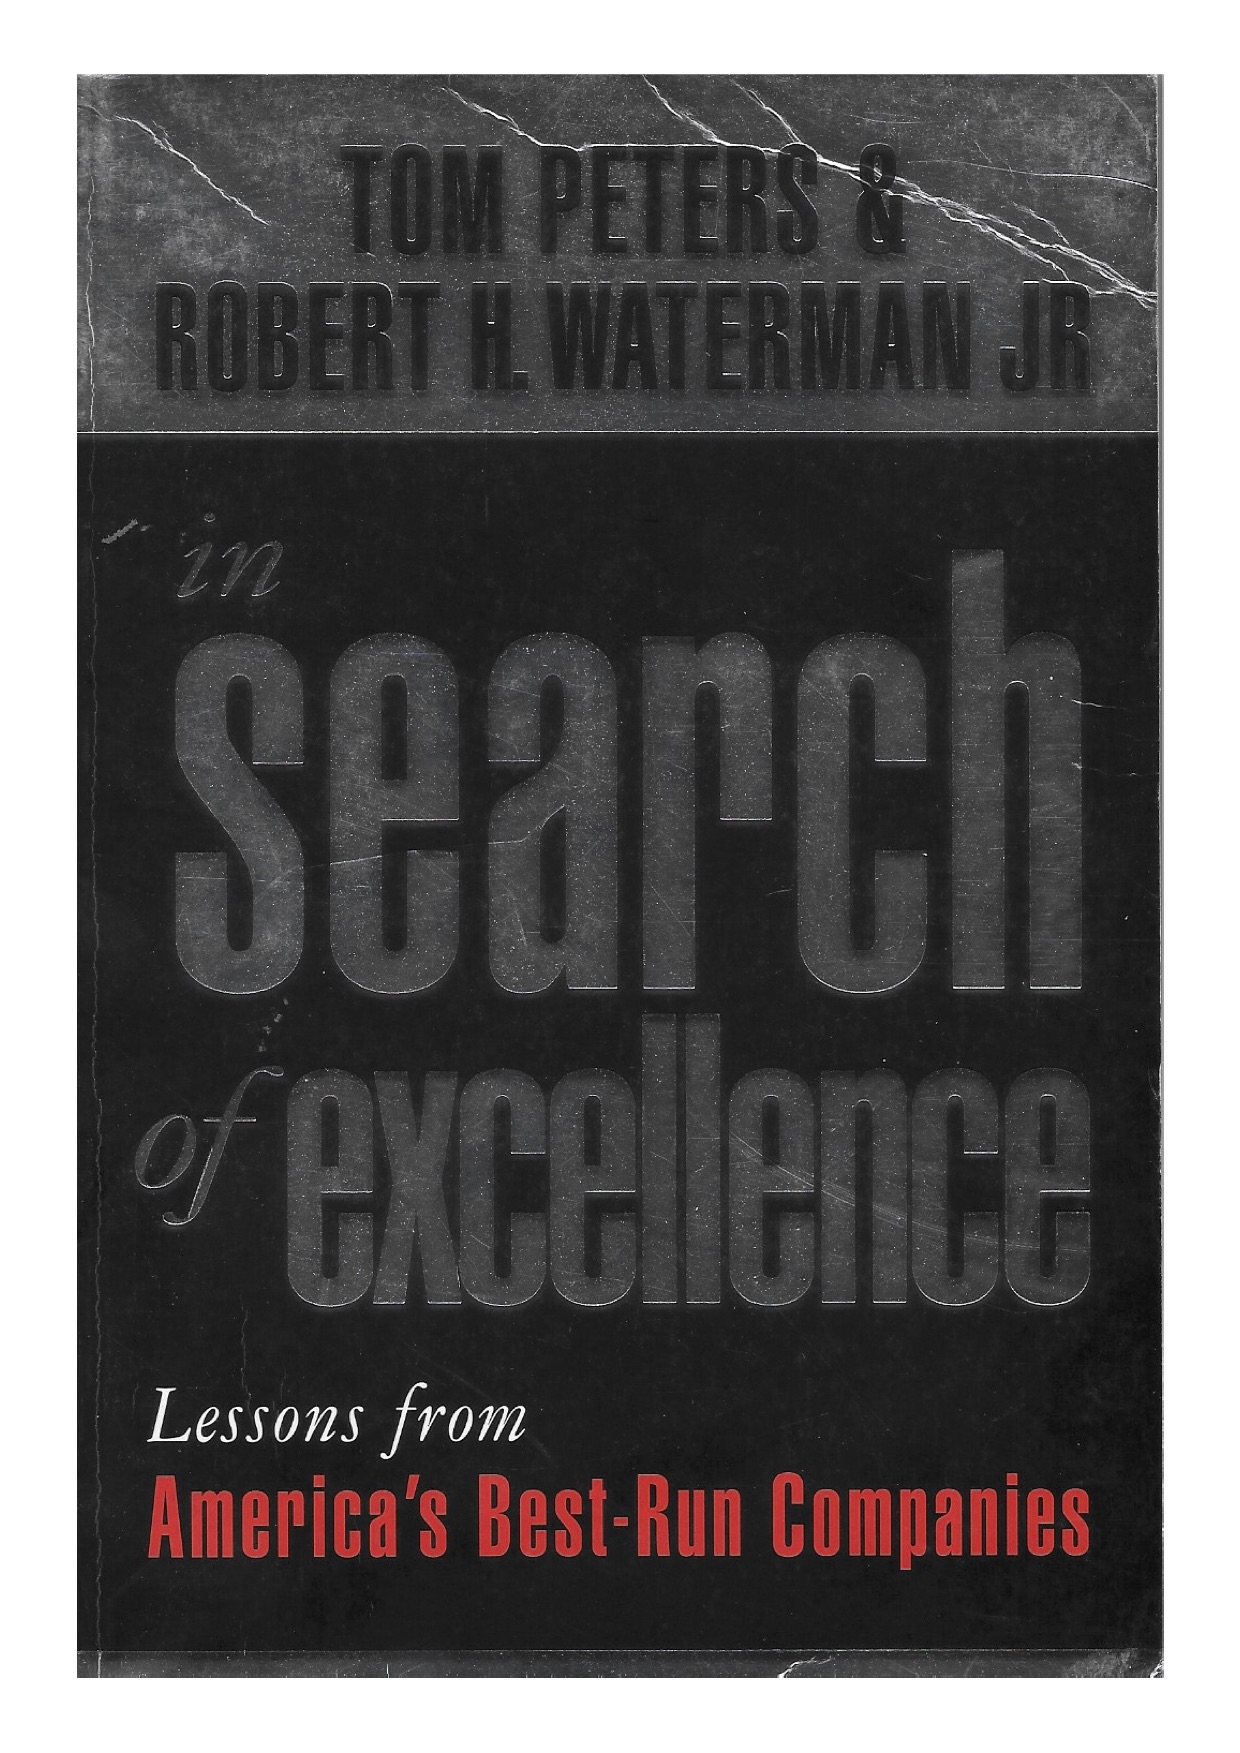 In search of excellence peters waterman greatest hits blog in search of excellence peters waterman greatest hits blog kevin duncan publicscrutiny Choice Image